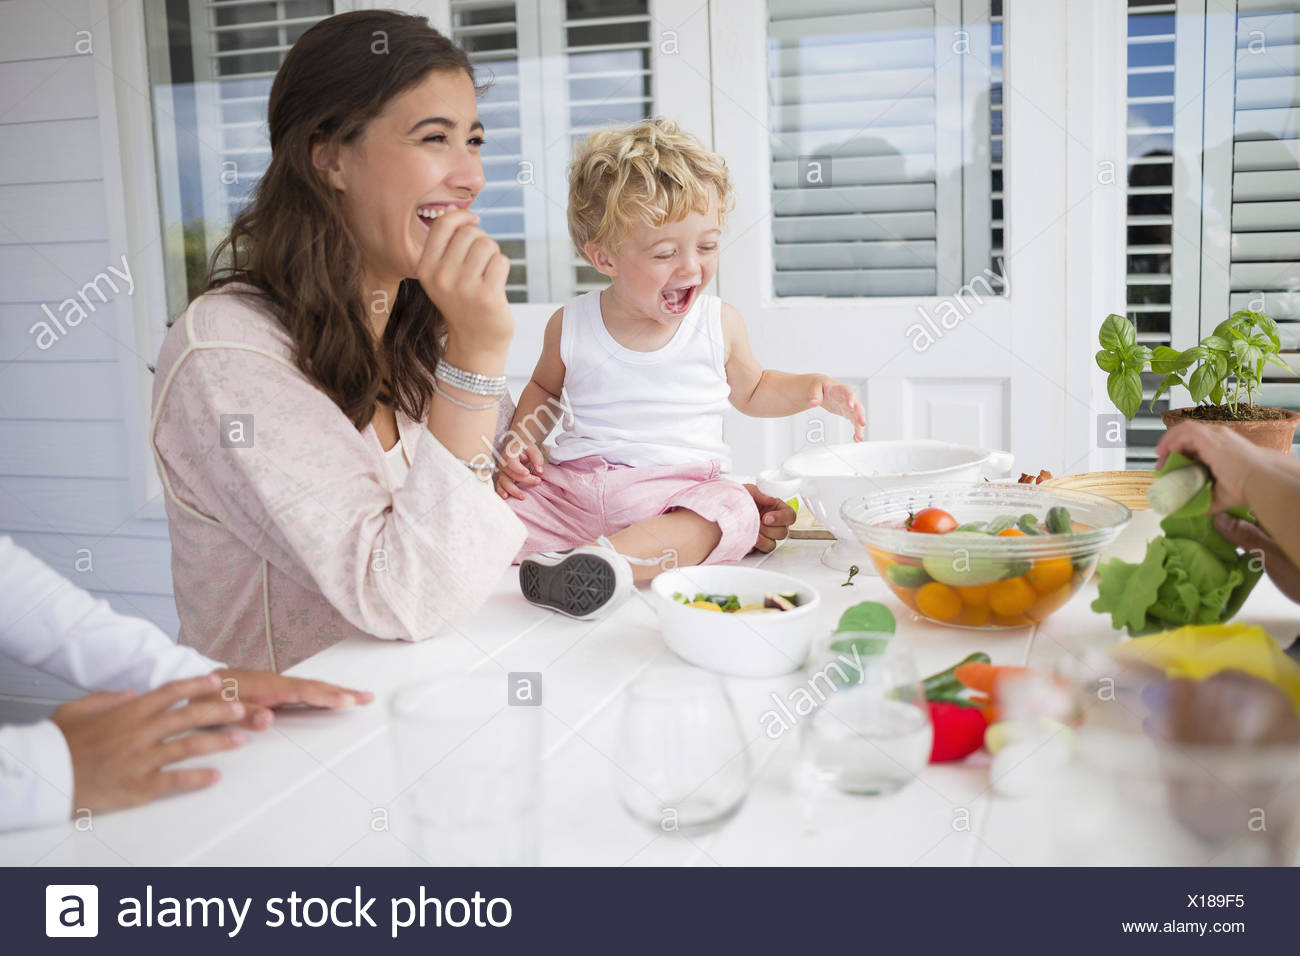 Happy family preparing food at home - Stock Image